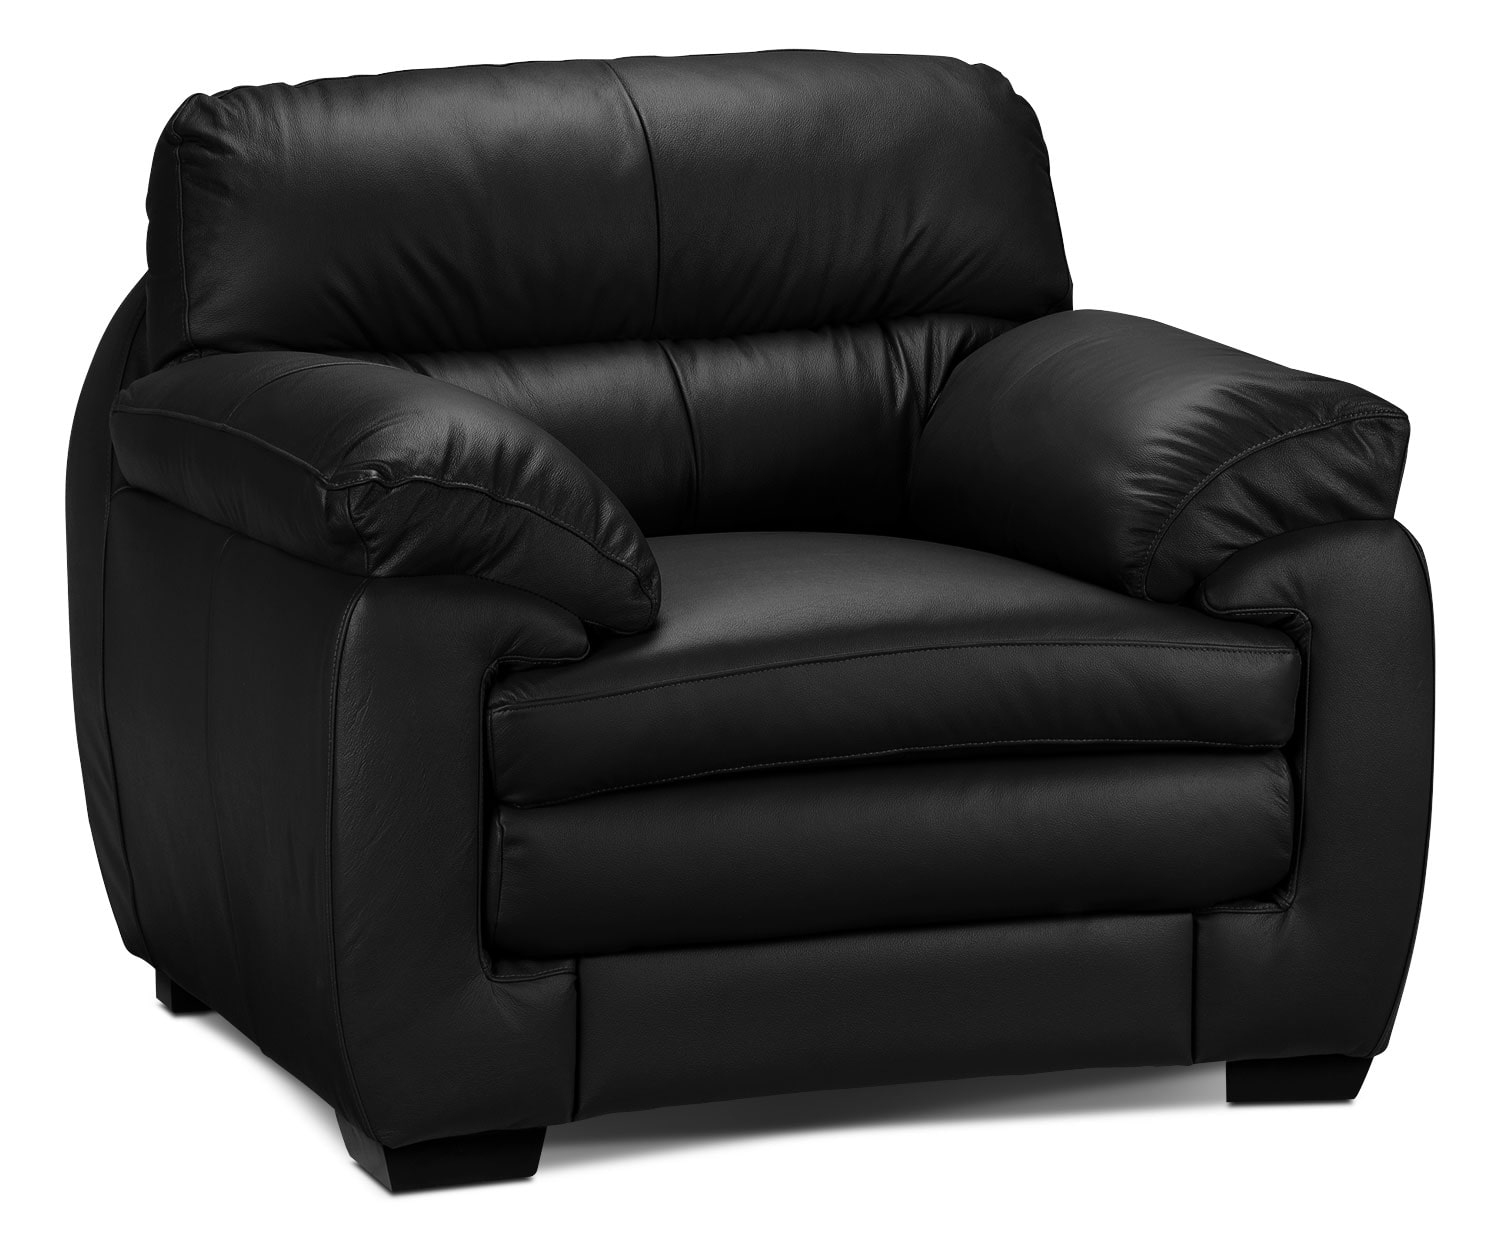 Living Room Furniture - Cambria Chair - Black